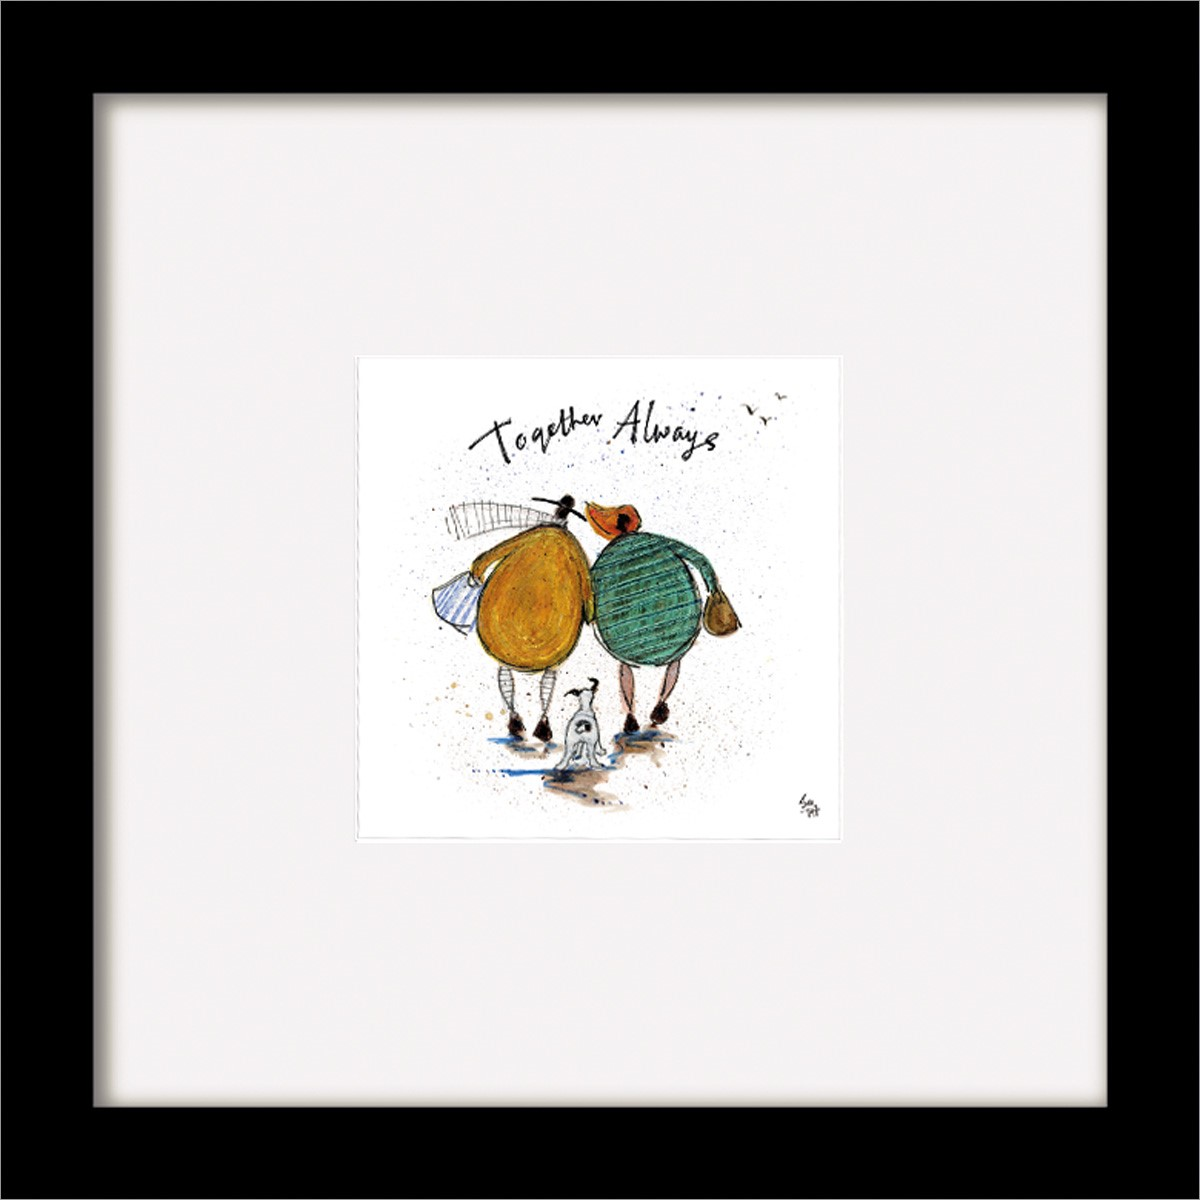 Sam Toft Print (together Always) Black Wooden Framed 35x35cm